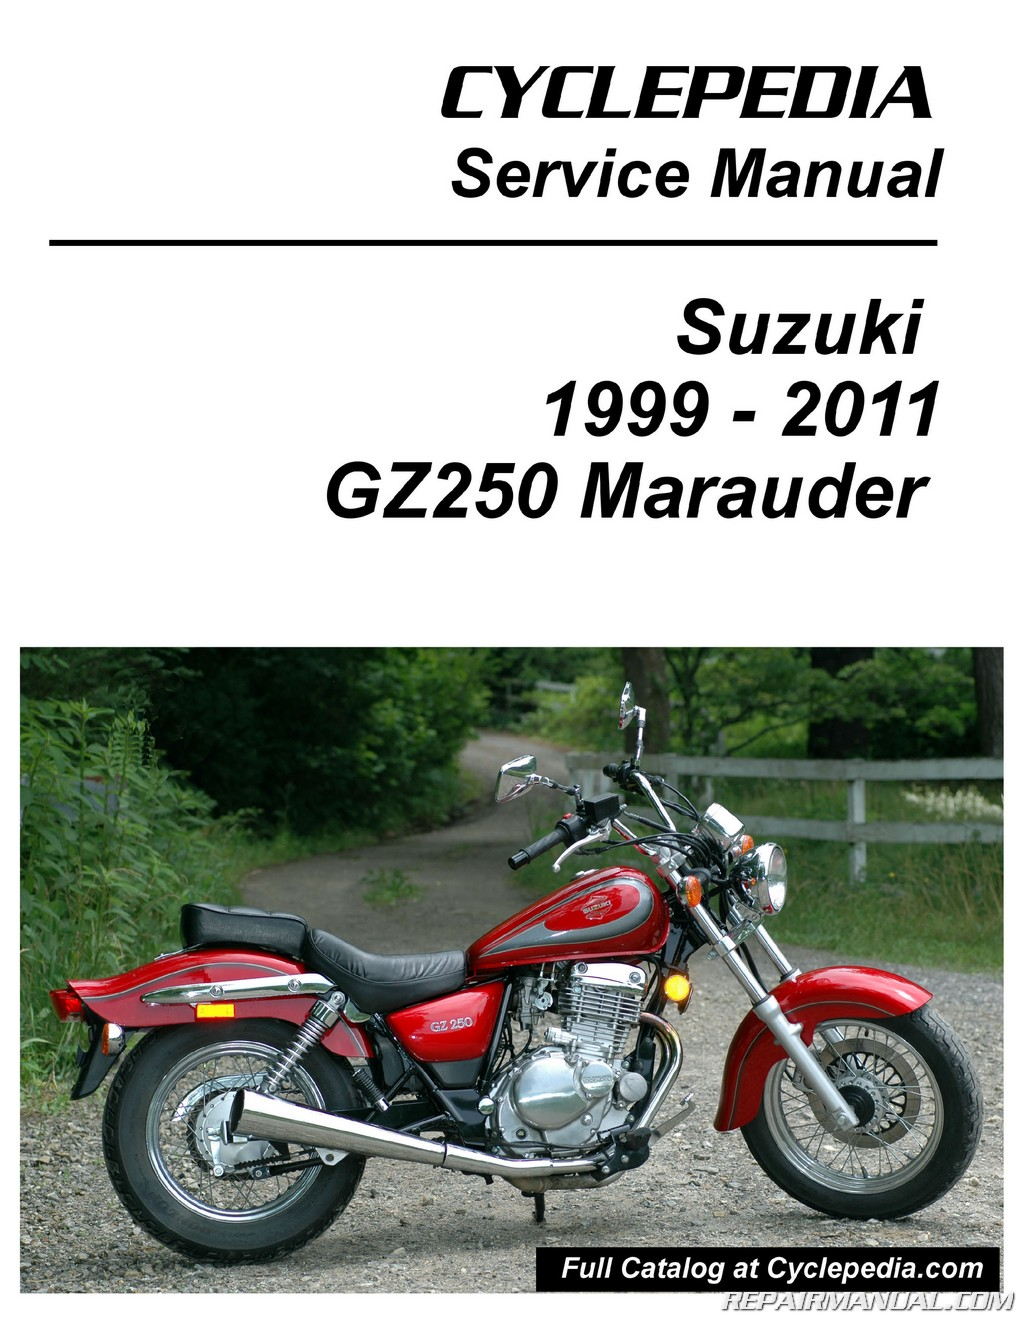 Suzuki Gz250 Marauder Cyclepedia Printed Service Manual Fender Wiring Diagram